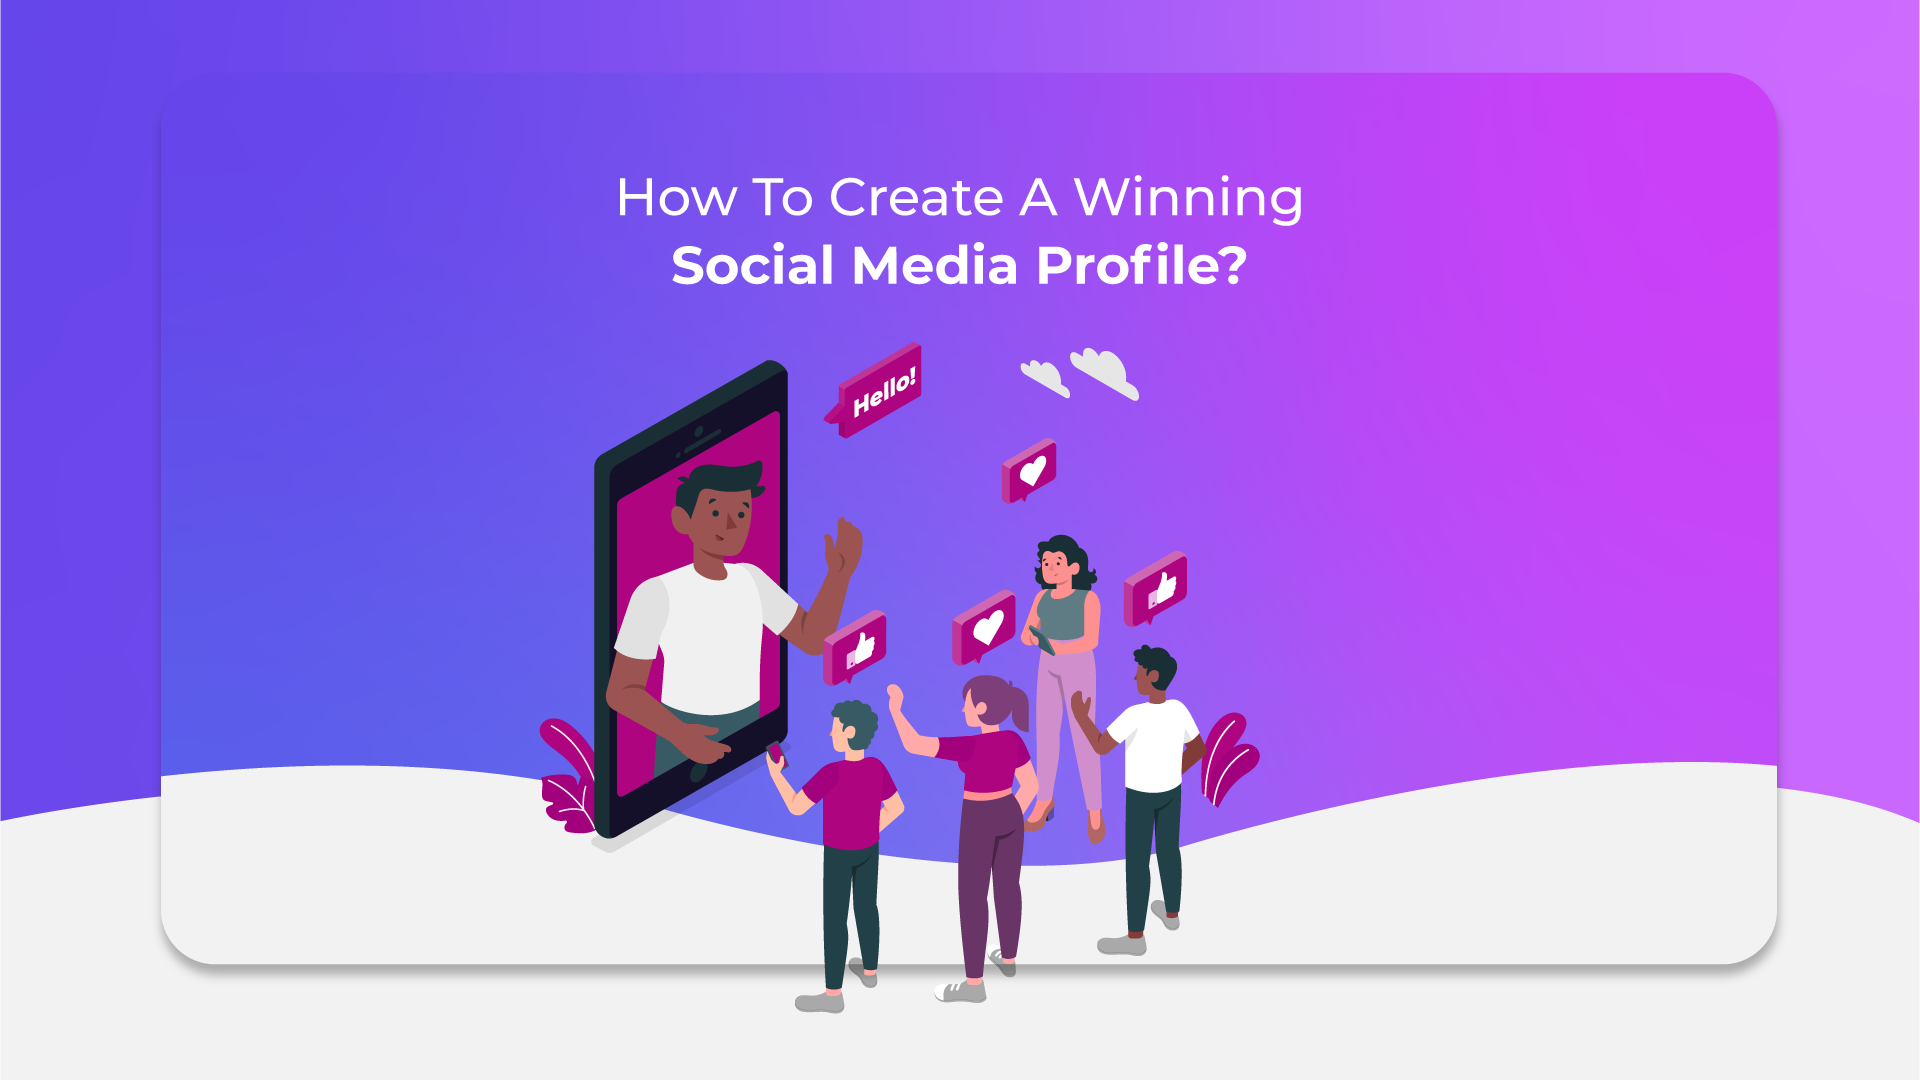 How To Create A Winning Social Media Profile?